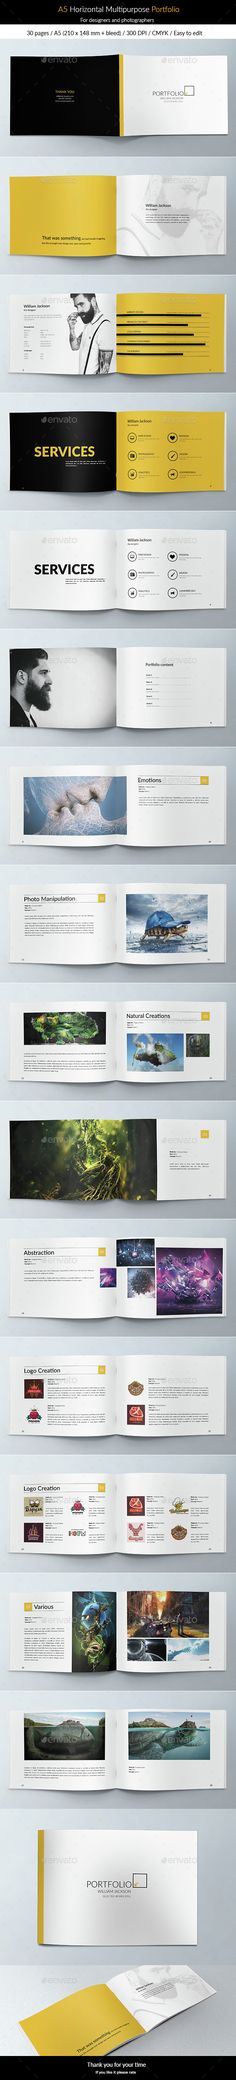 A5 Horizontal Multipurpose Portfolio Brochure Template PSD. Download here: http://graphicriver.net/item/a5-horizontal-multipurpose-portfolio/15221469?ref=ksioks                                                                                                                                                      More